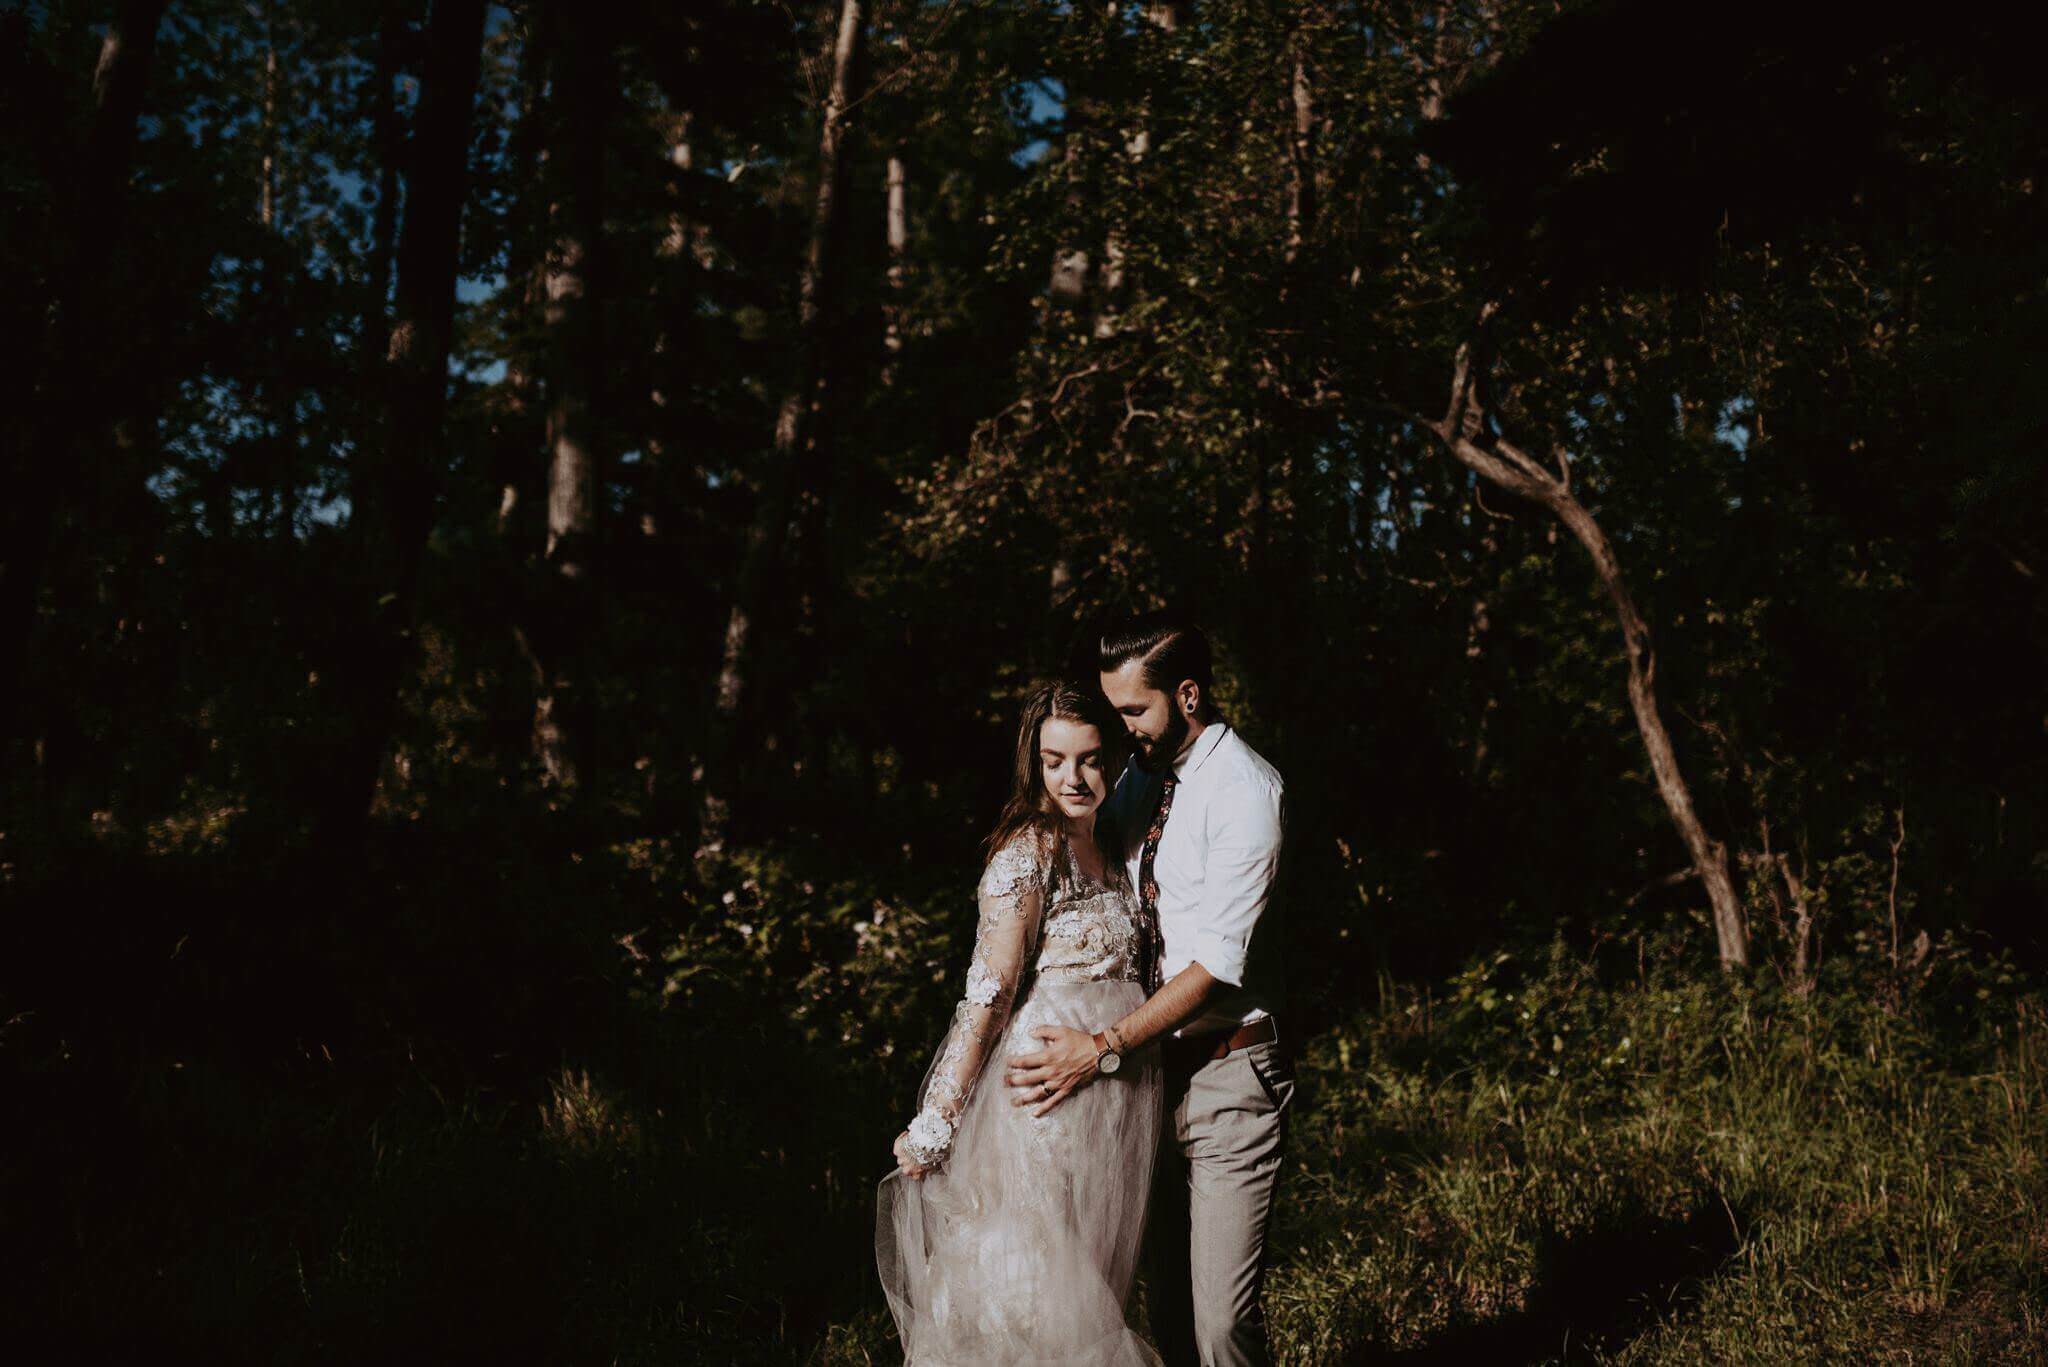 S Photography | Pacific Northwest Adventure Photographer | Columbia Gorge Intimate Wedding